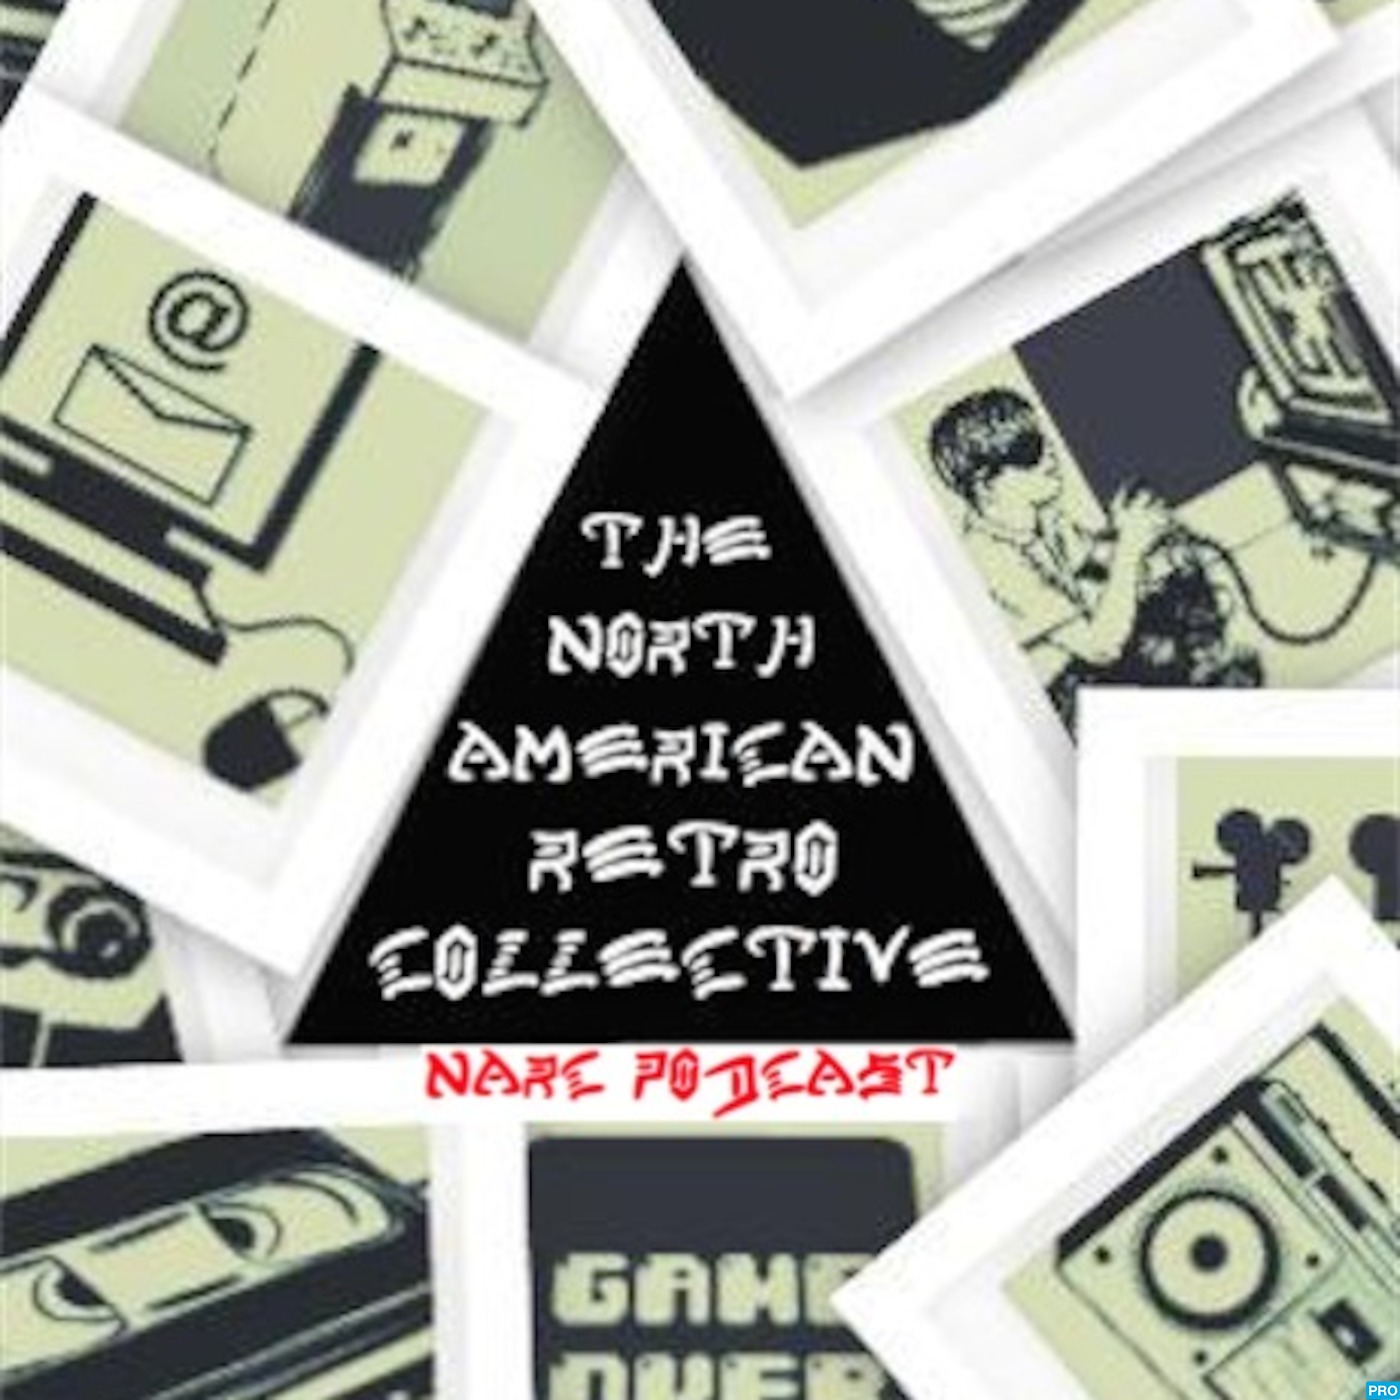 North American Retro Collective